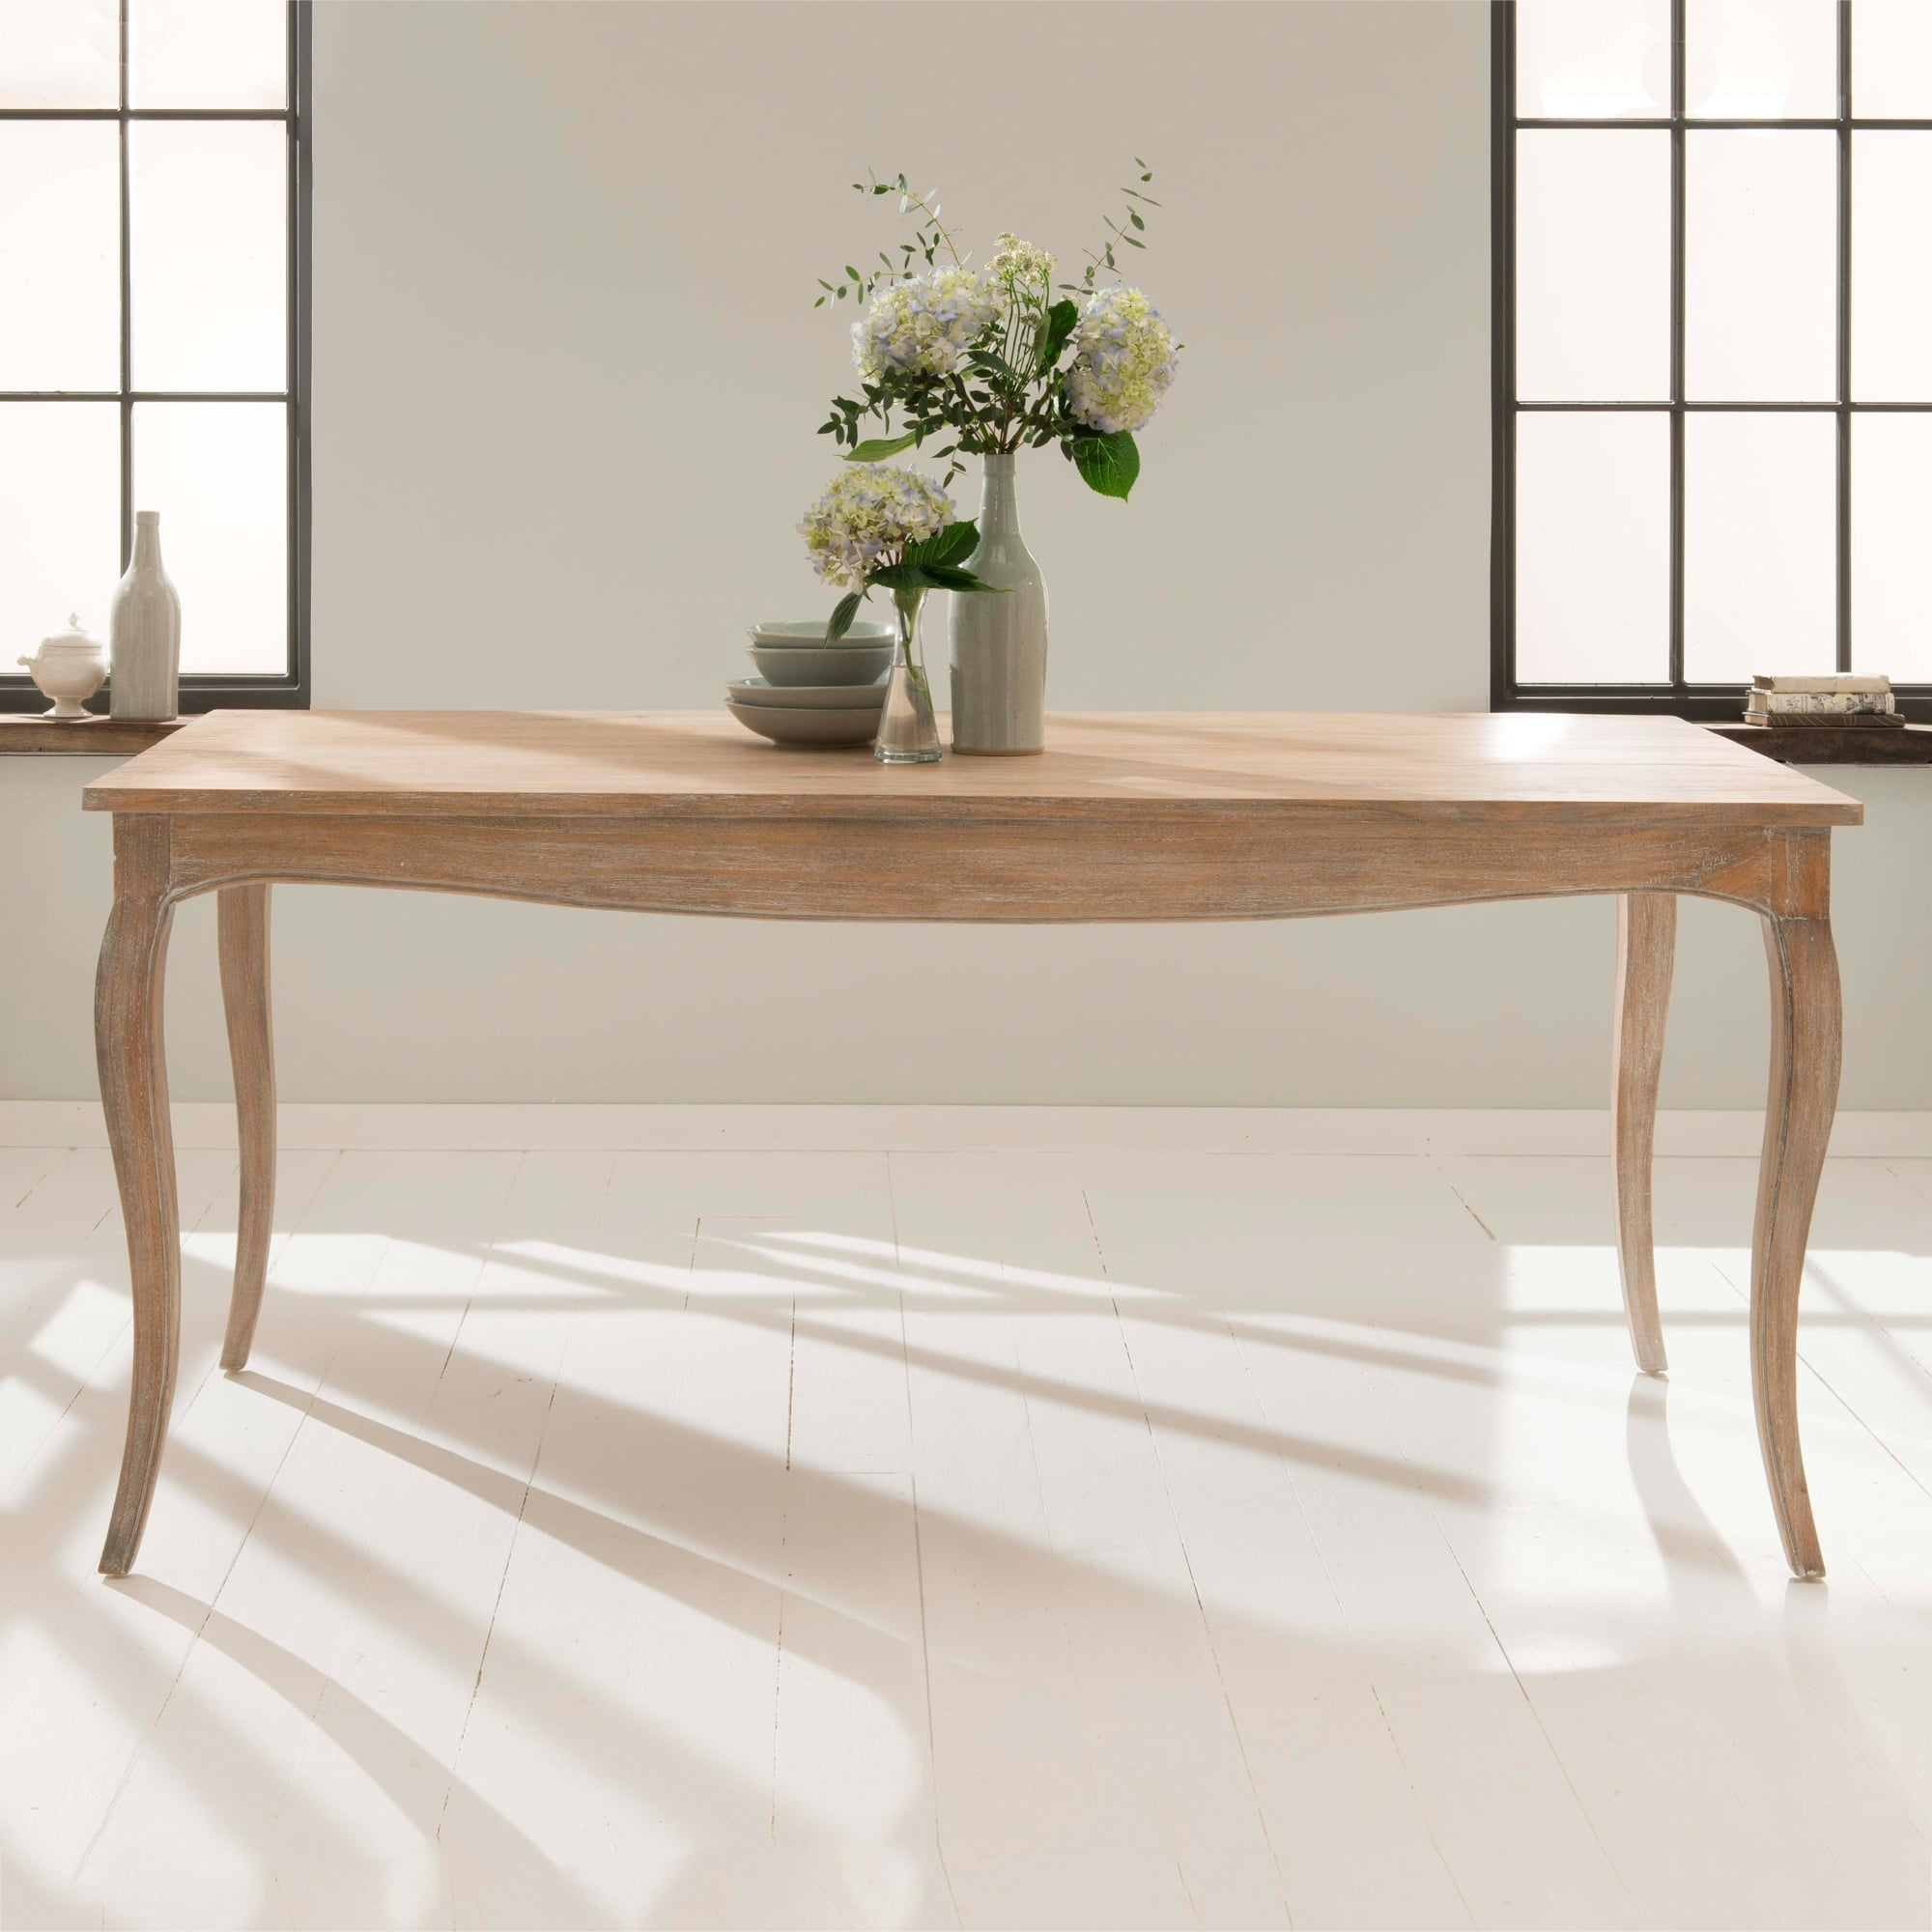 Mindi Wood Antique French Style Dining Table